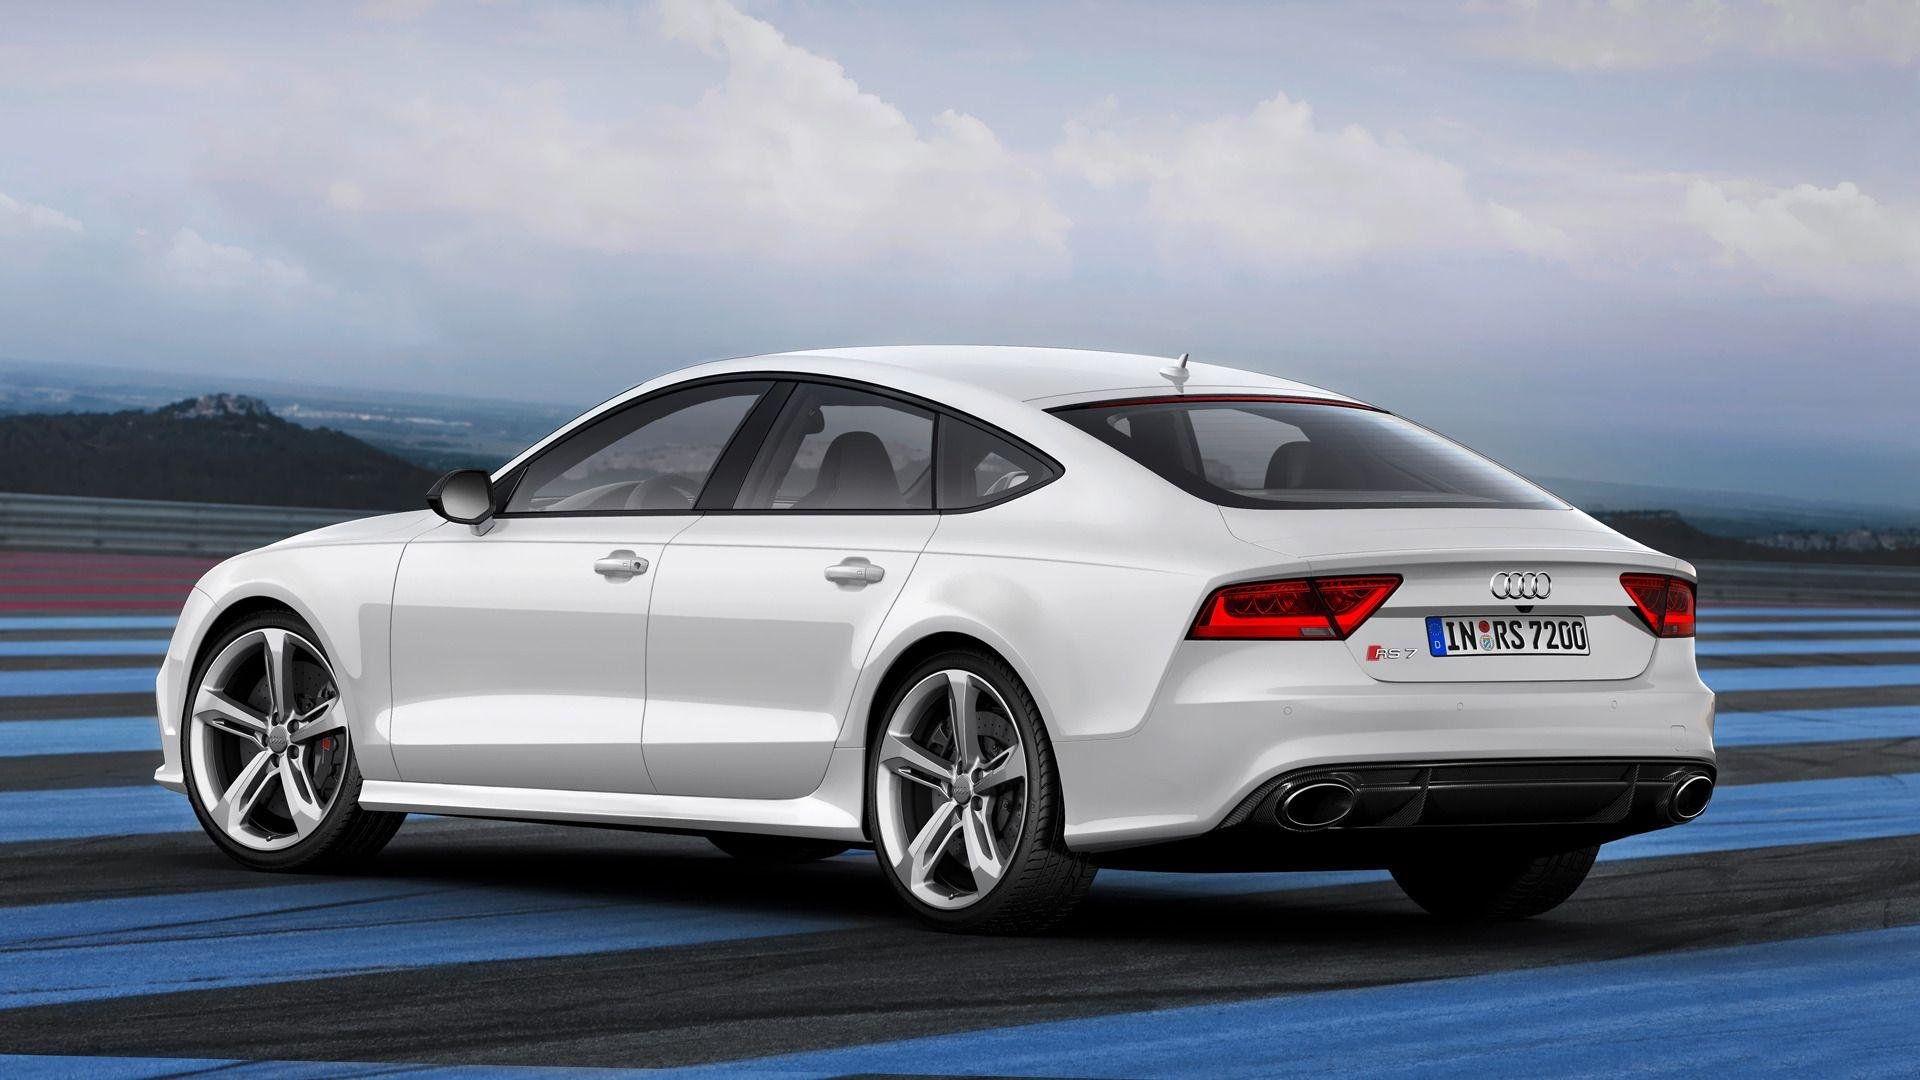 Audi Rs7 Wallpapers Iphone Audi Rs7 Backgrounds Wallpapers